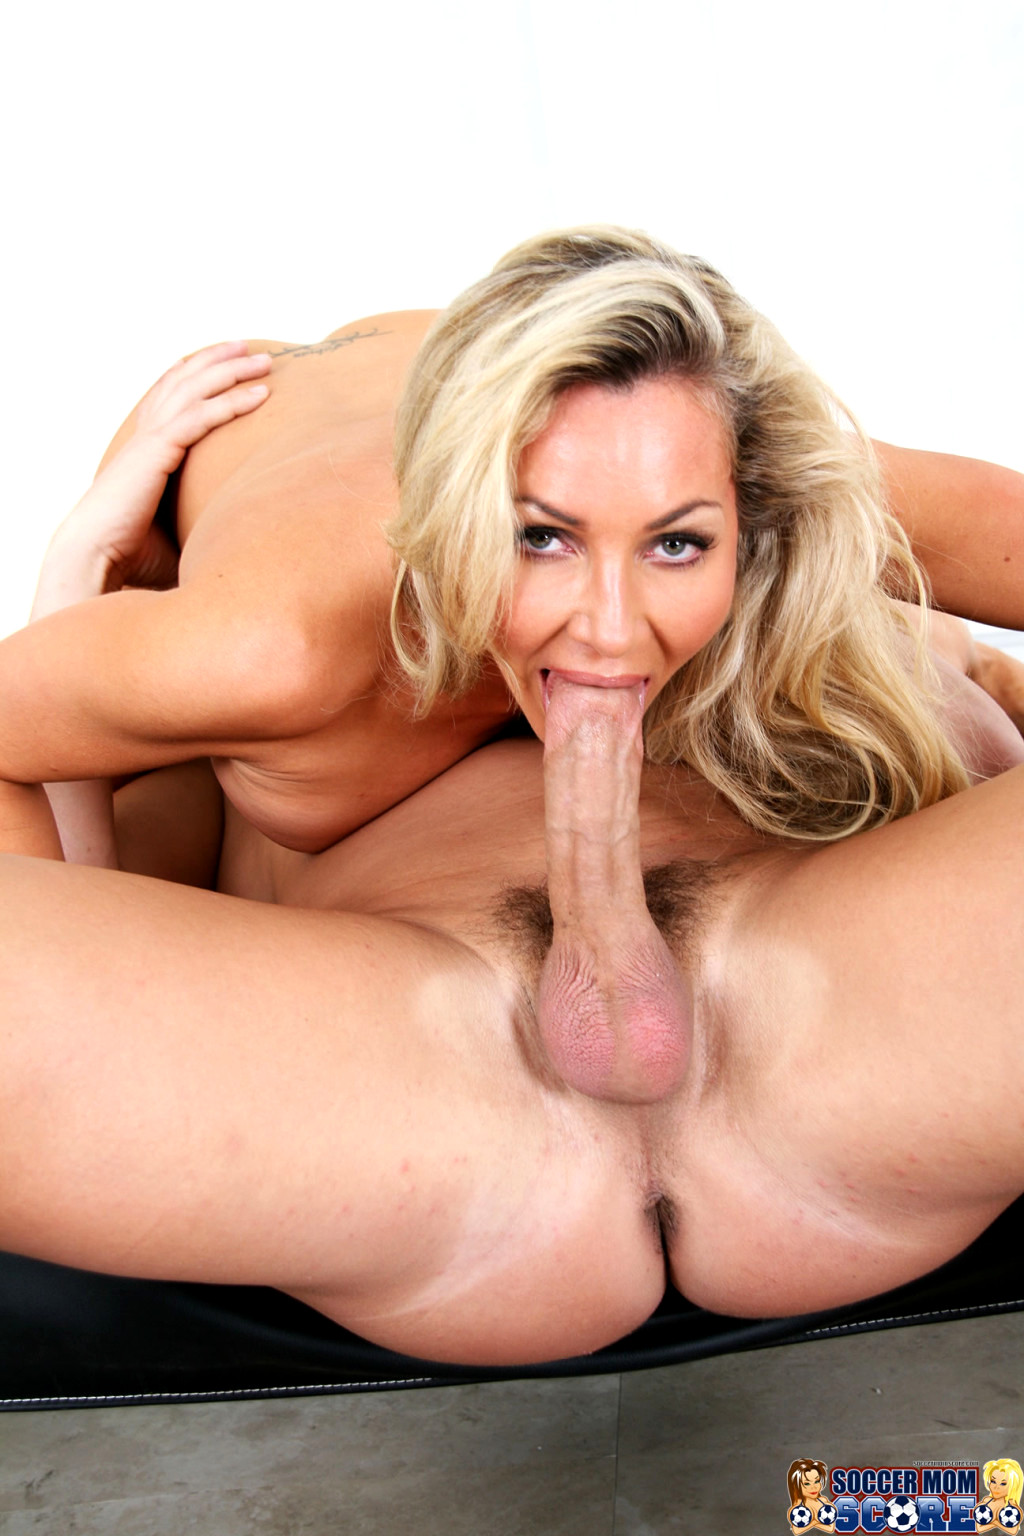 Horny Blonde Moans At The Thought Of Fucking